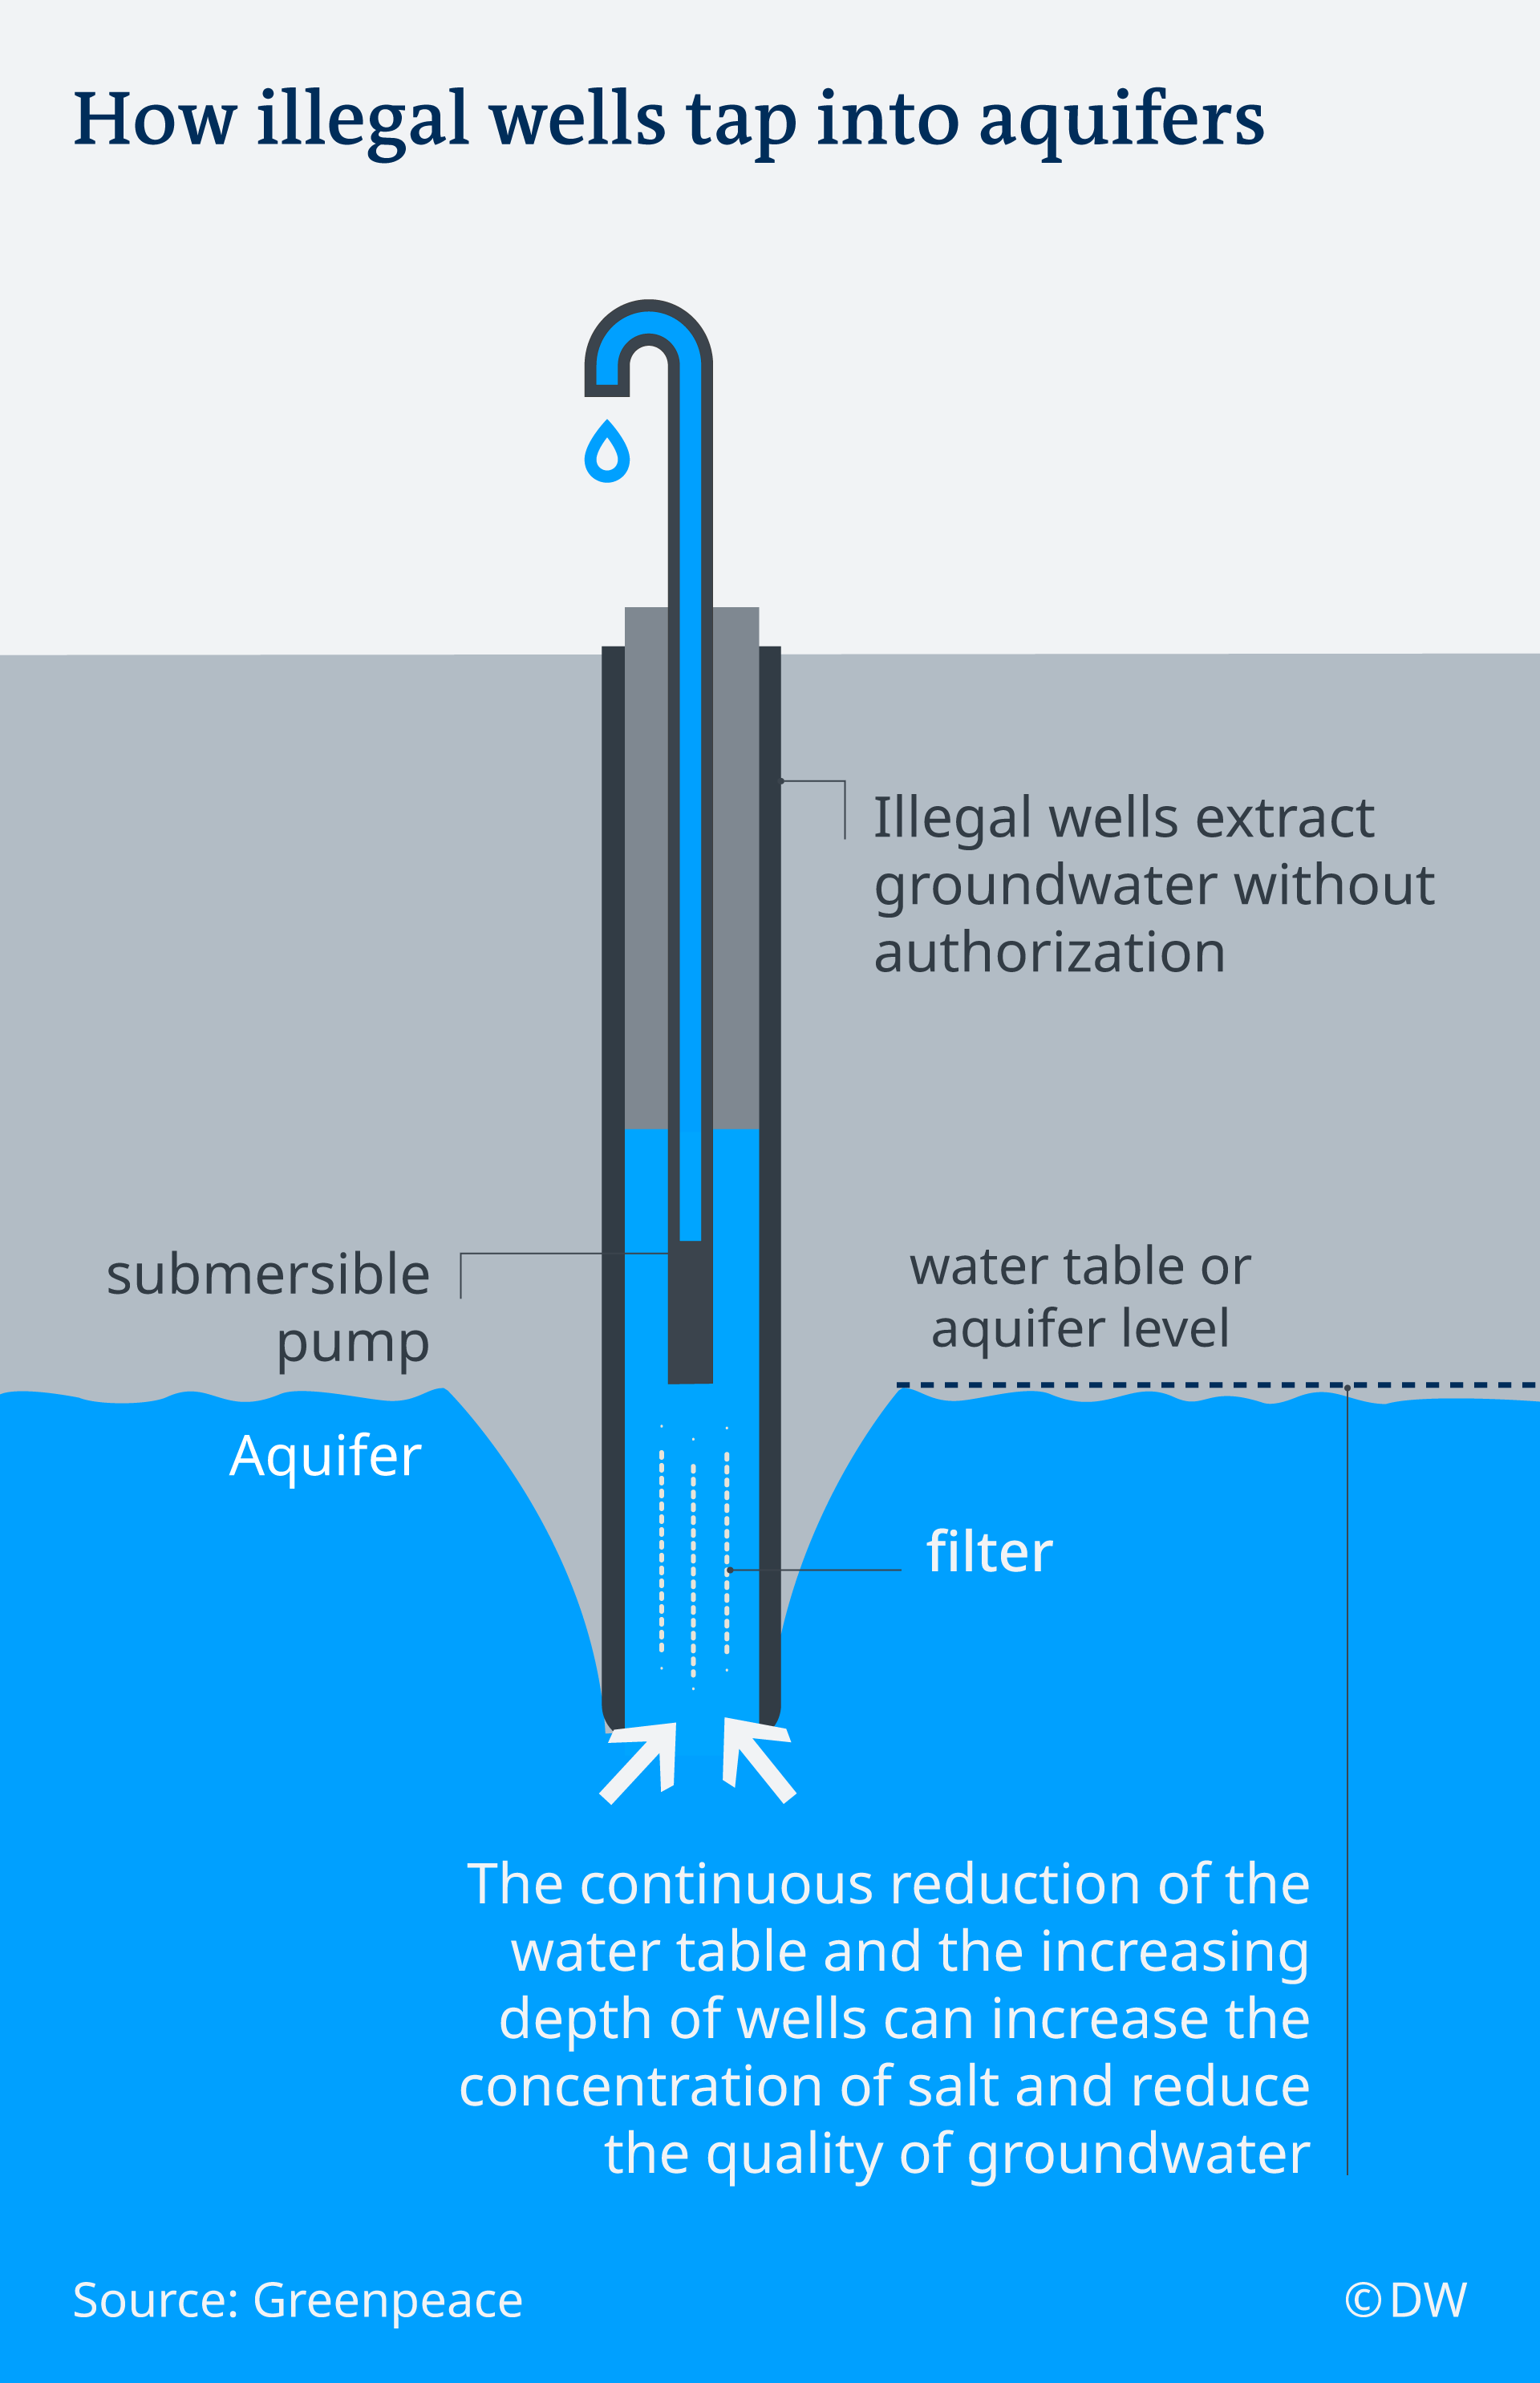 The graphic shows how the illegal wells work